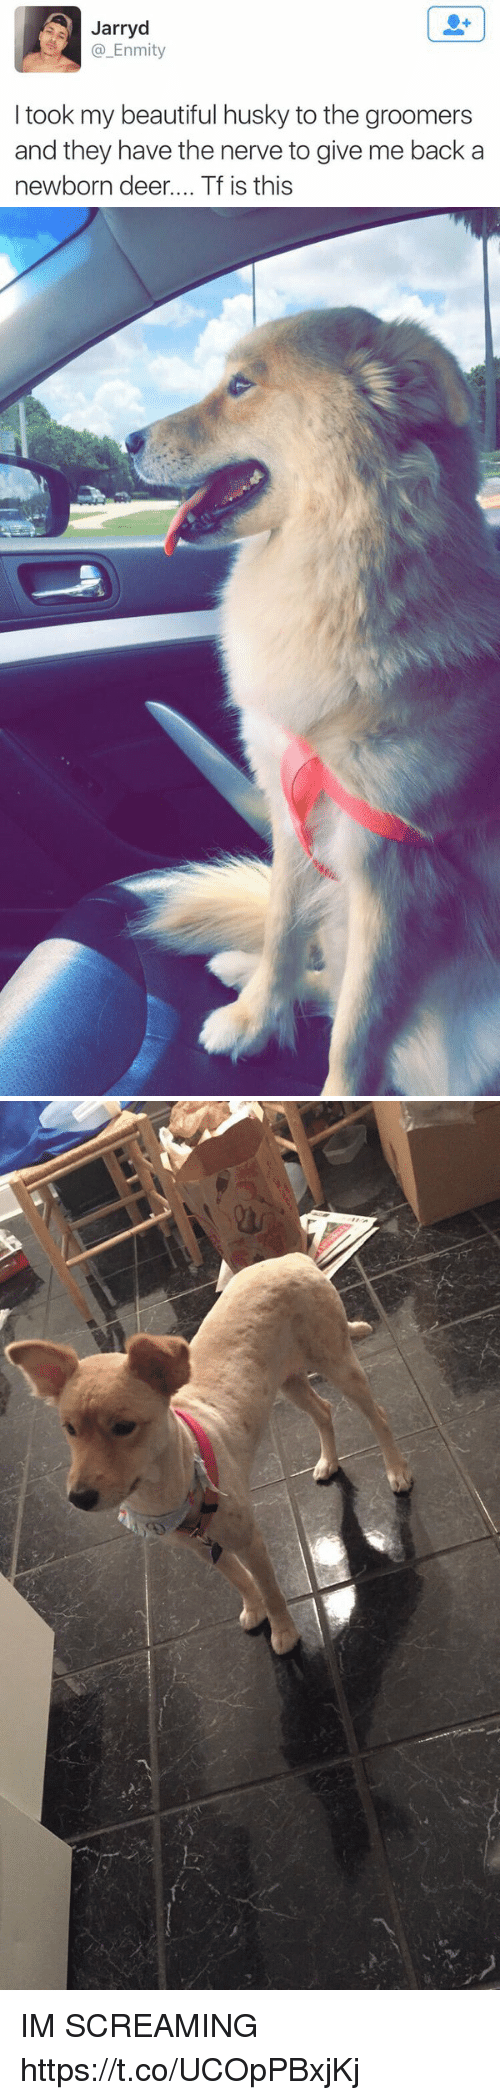 Groomers: Jarryd  @_Enmity  I took my beautiful husky to the groomers  and they have the nerve to give me back a  newborn deer.... Tf is this IM SCREAMING https://t.co/UCOpPBxjKj